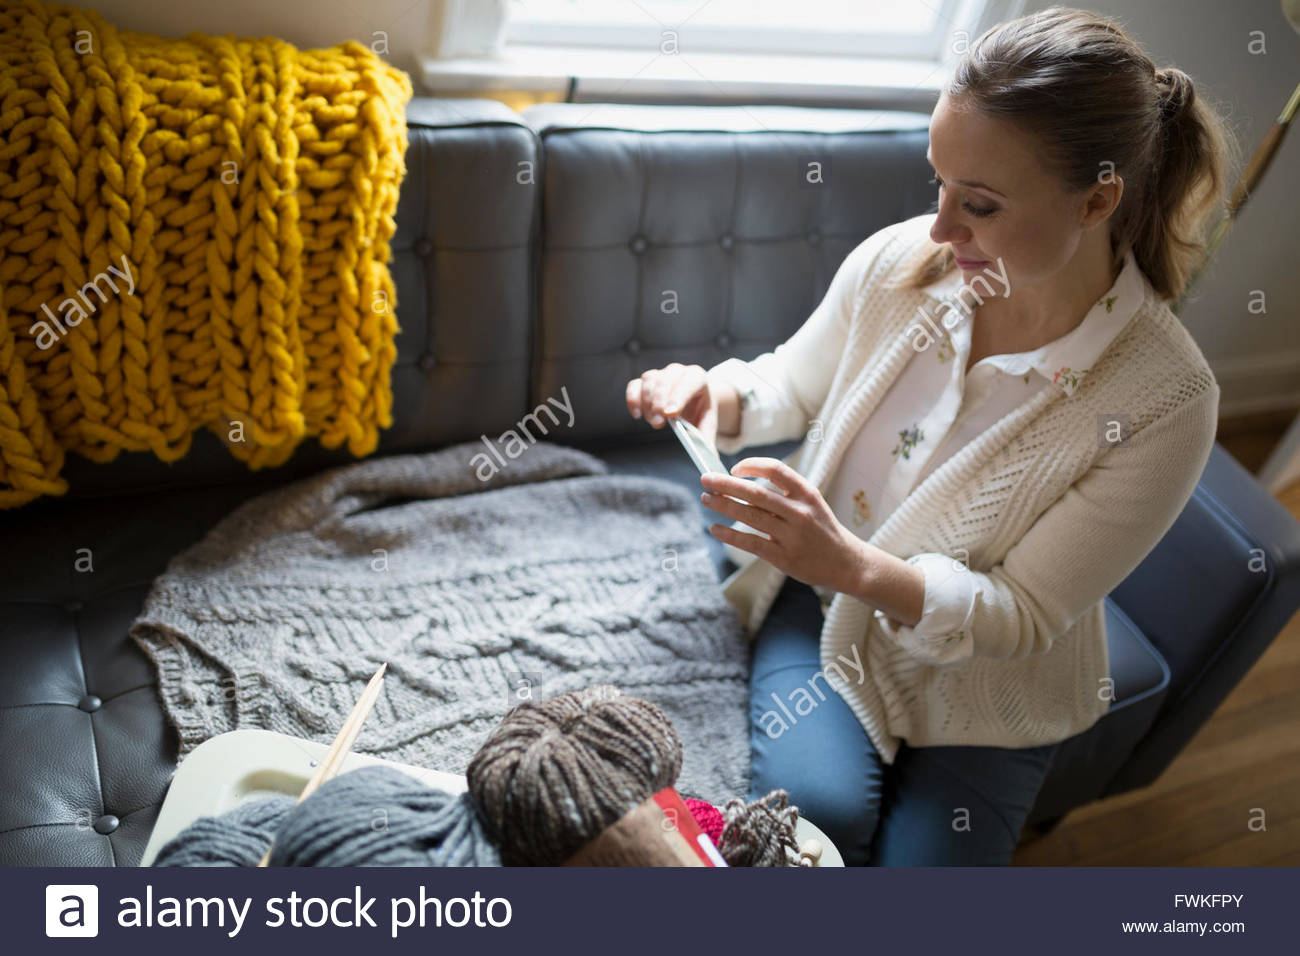 Woman photographing homemade knit sweater with camera phone - Stock Image